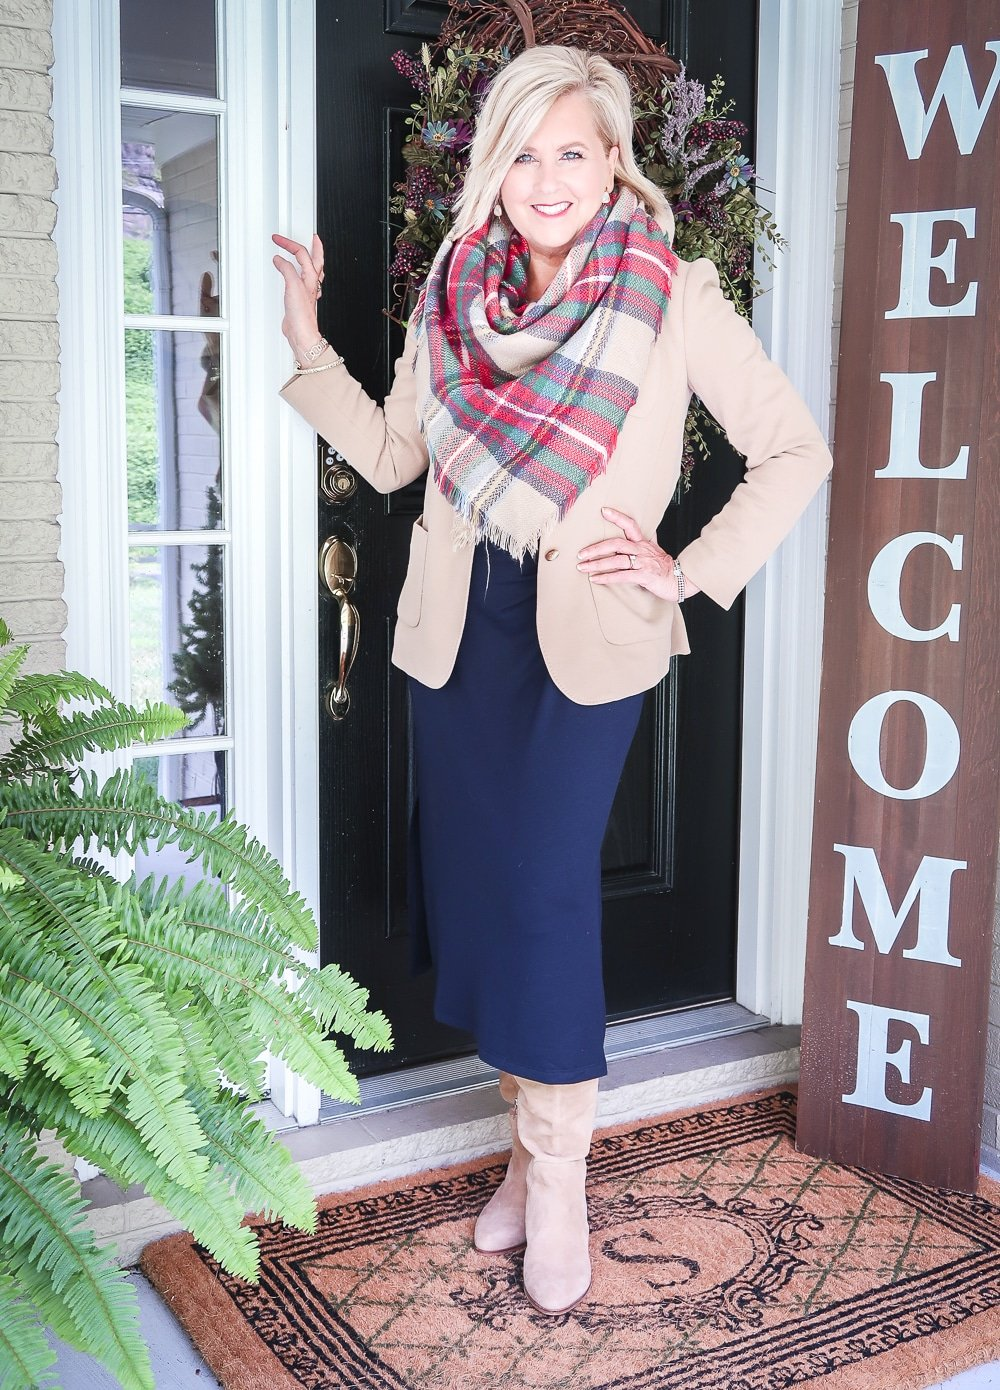 Fashion Blogger 50 Is Not Old is wearing a navy midi dress in all of the seasons. In winter, she added a tan blazer, a blanket scarf, and knee boots